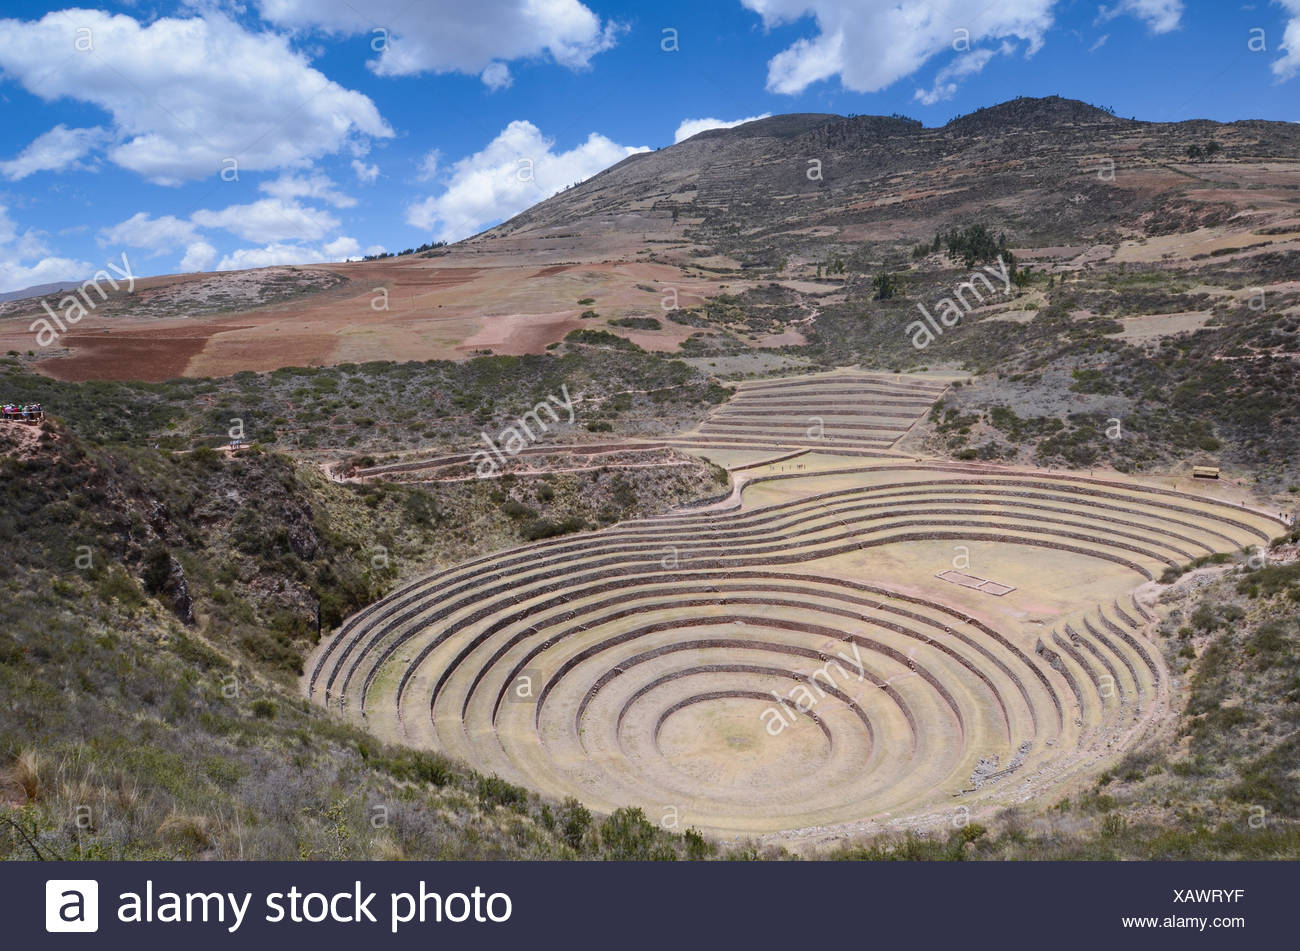 Moray, an archaeological site in Peru approximately 50 km northwest of Cuzco - Stock Image